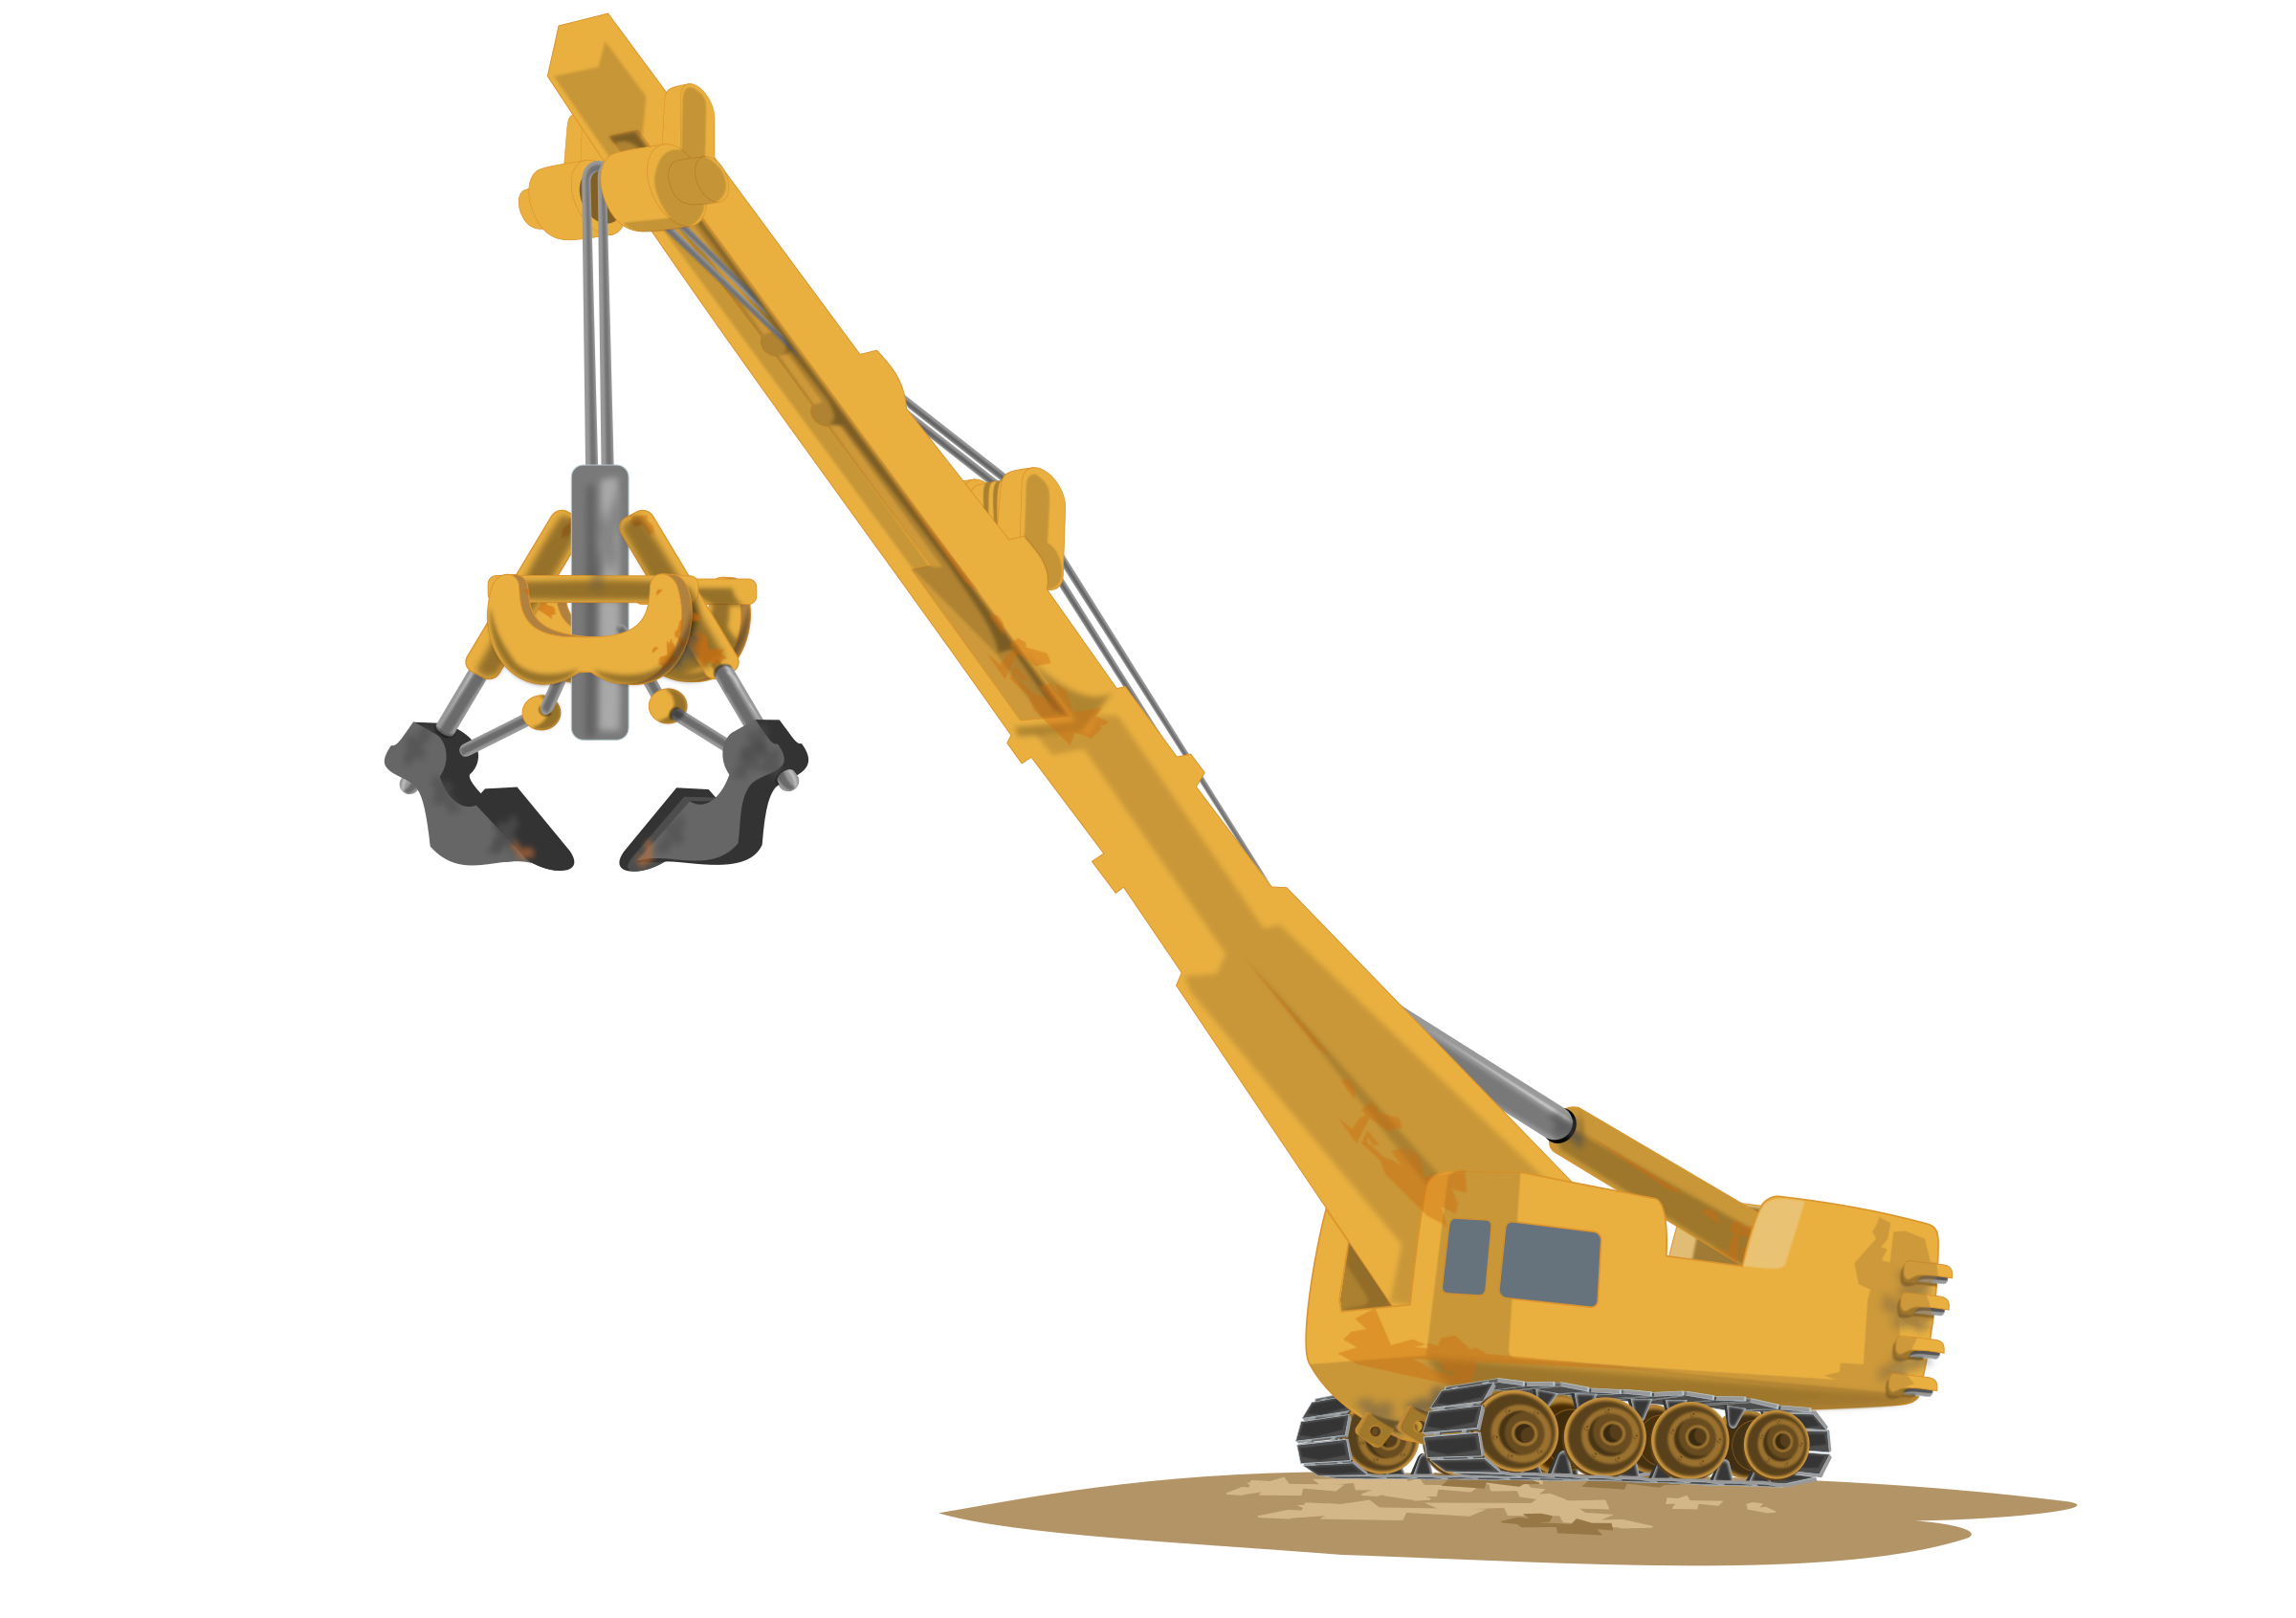 jpg black and white download Transparent free on dumielauxepices. Construction crane clipart.